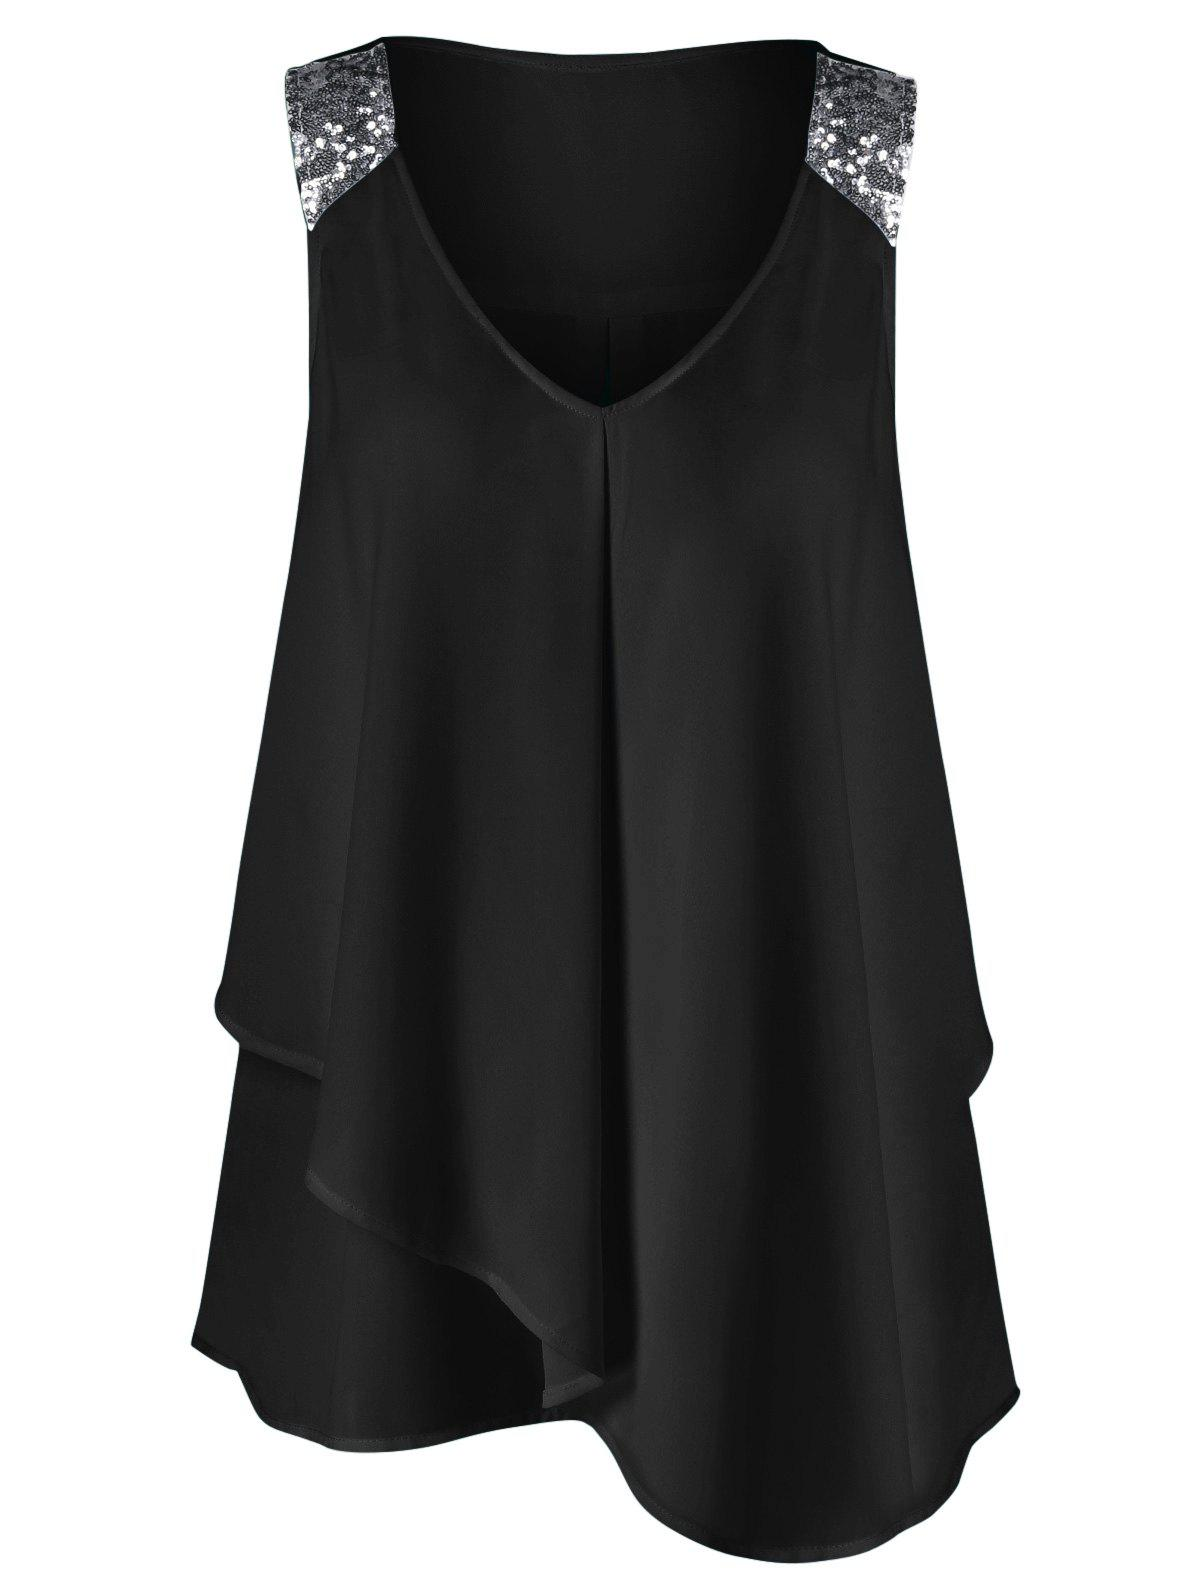 Plus Size Sequined Sleeveless Shoulder Overlap BlouseWOMEN<br><br>Size: 5XL; Color: BLACK; Material: Polyester; Shirt Length: Long; Sleeve Length: Sleeveless; Collar: V-Neck; Style: Fashion; Season: Summer; Pattern Type: Others; Weight: 0.2200kg; Package Contents: 1 x Blouse;